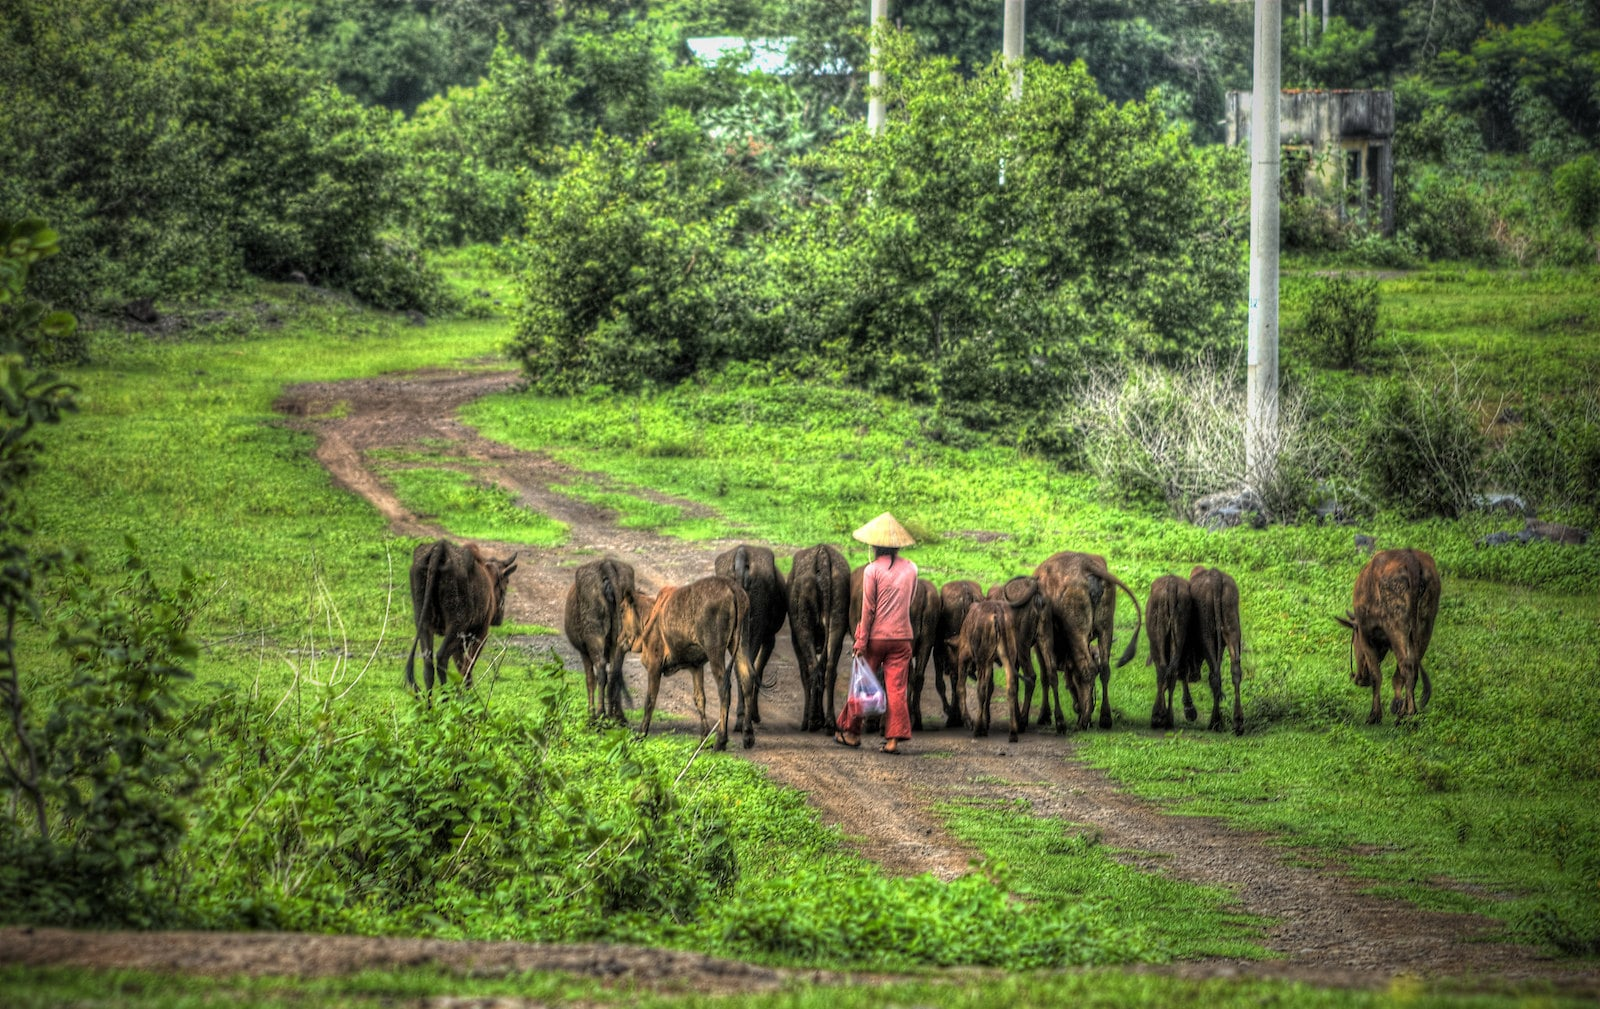 Image of a person leading cattle on a path in Ba Ria, Vietnam